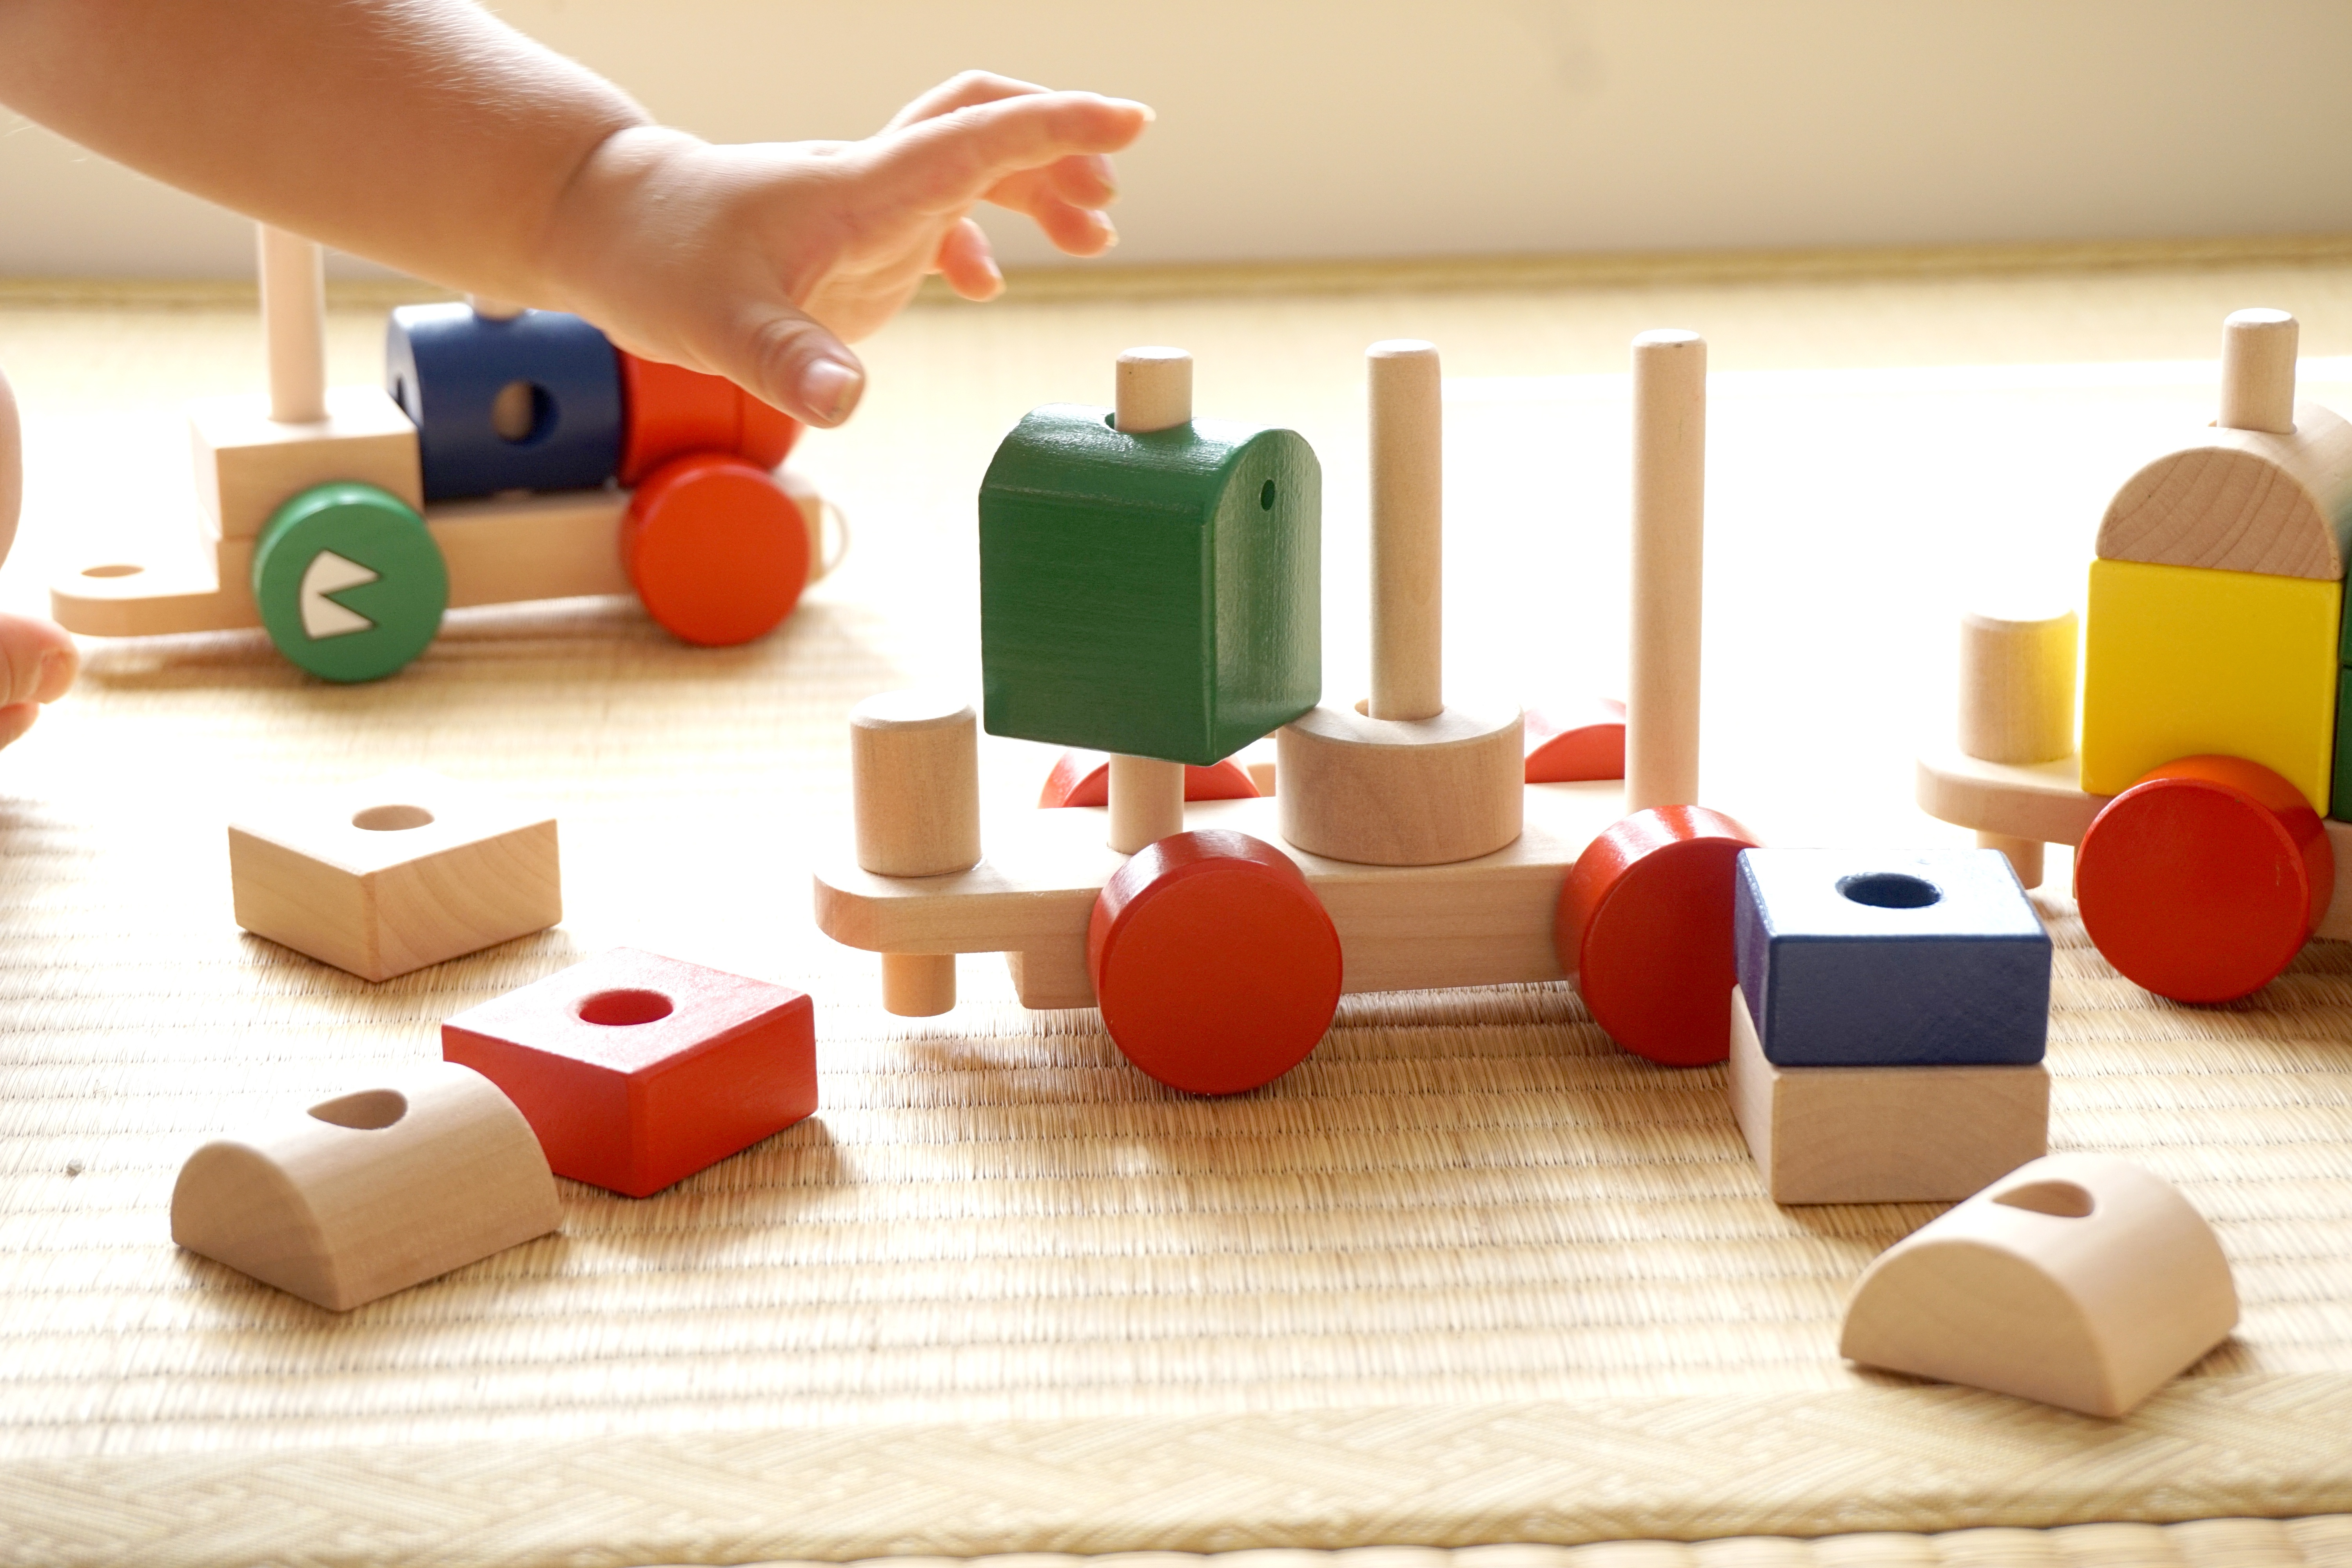 A child's hand reaches for a bright green wooden block surrounded by a colorful wooden train set.